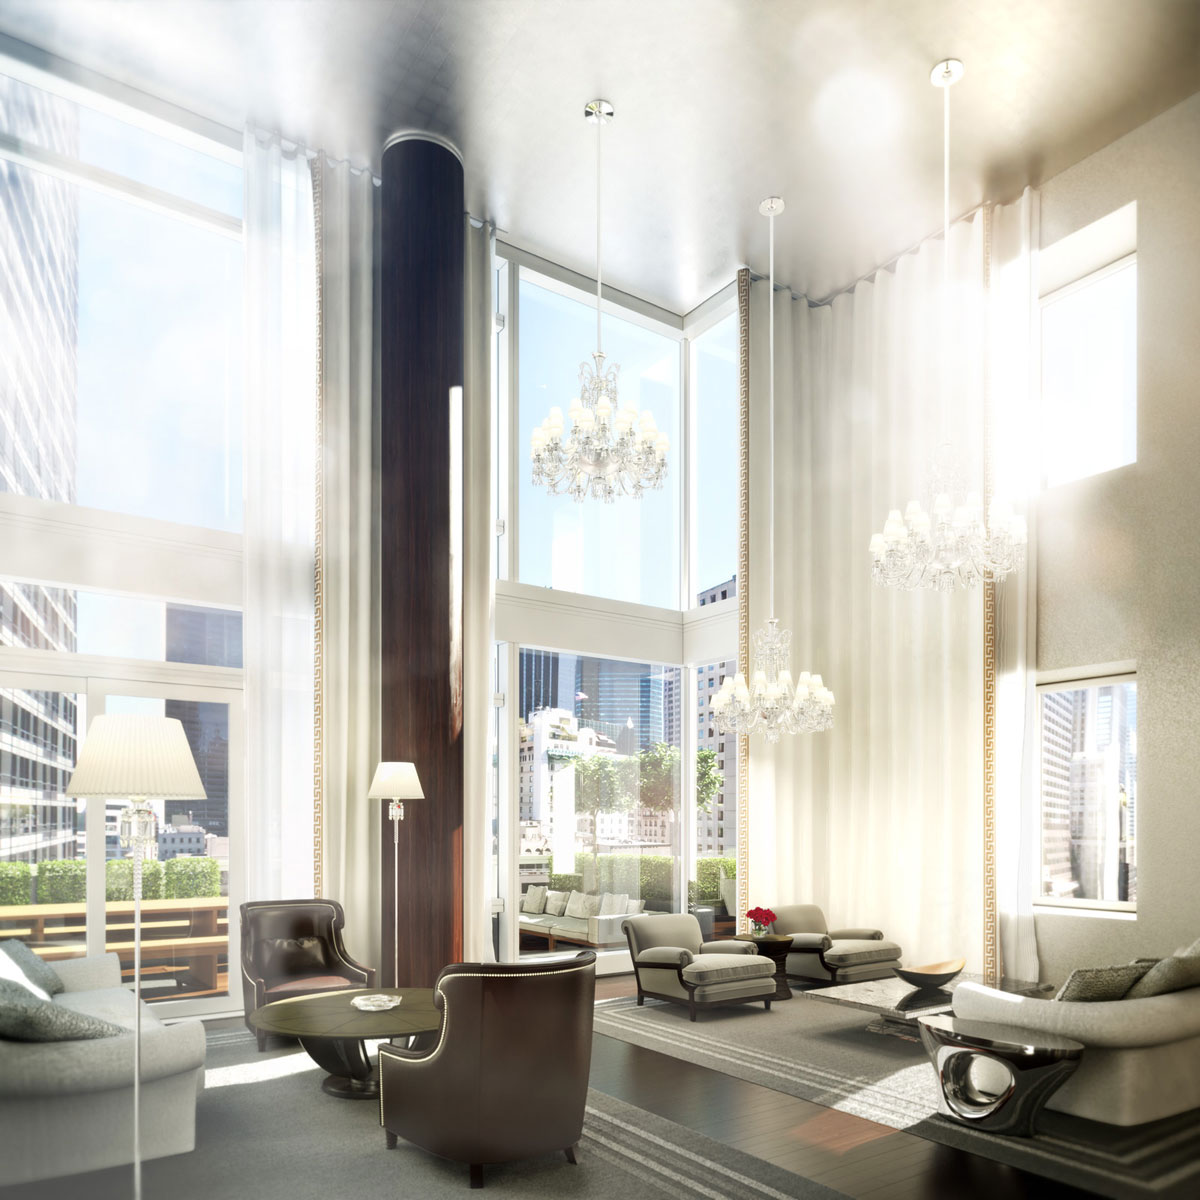 50 story baccarat hotel residences new york to open in - Baccarat hotel new york ...